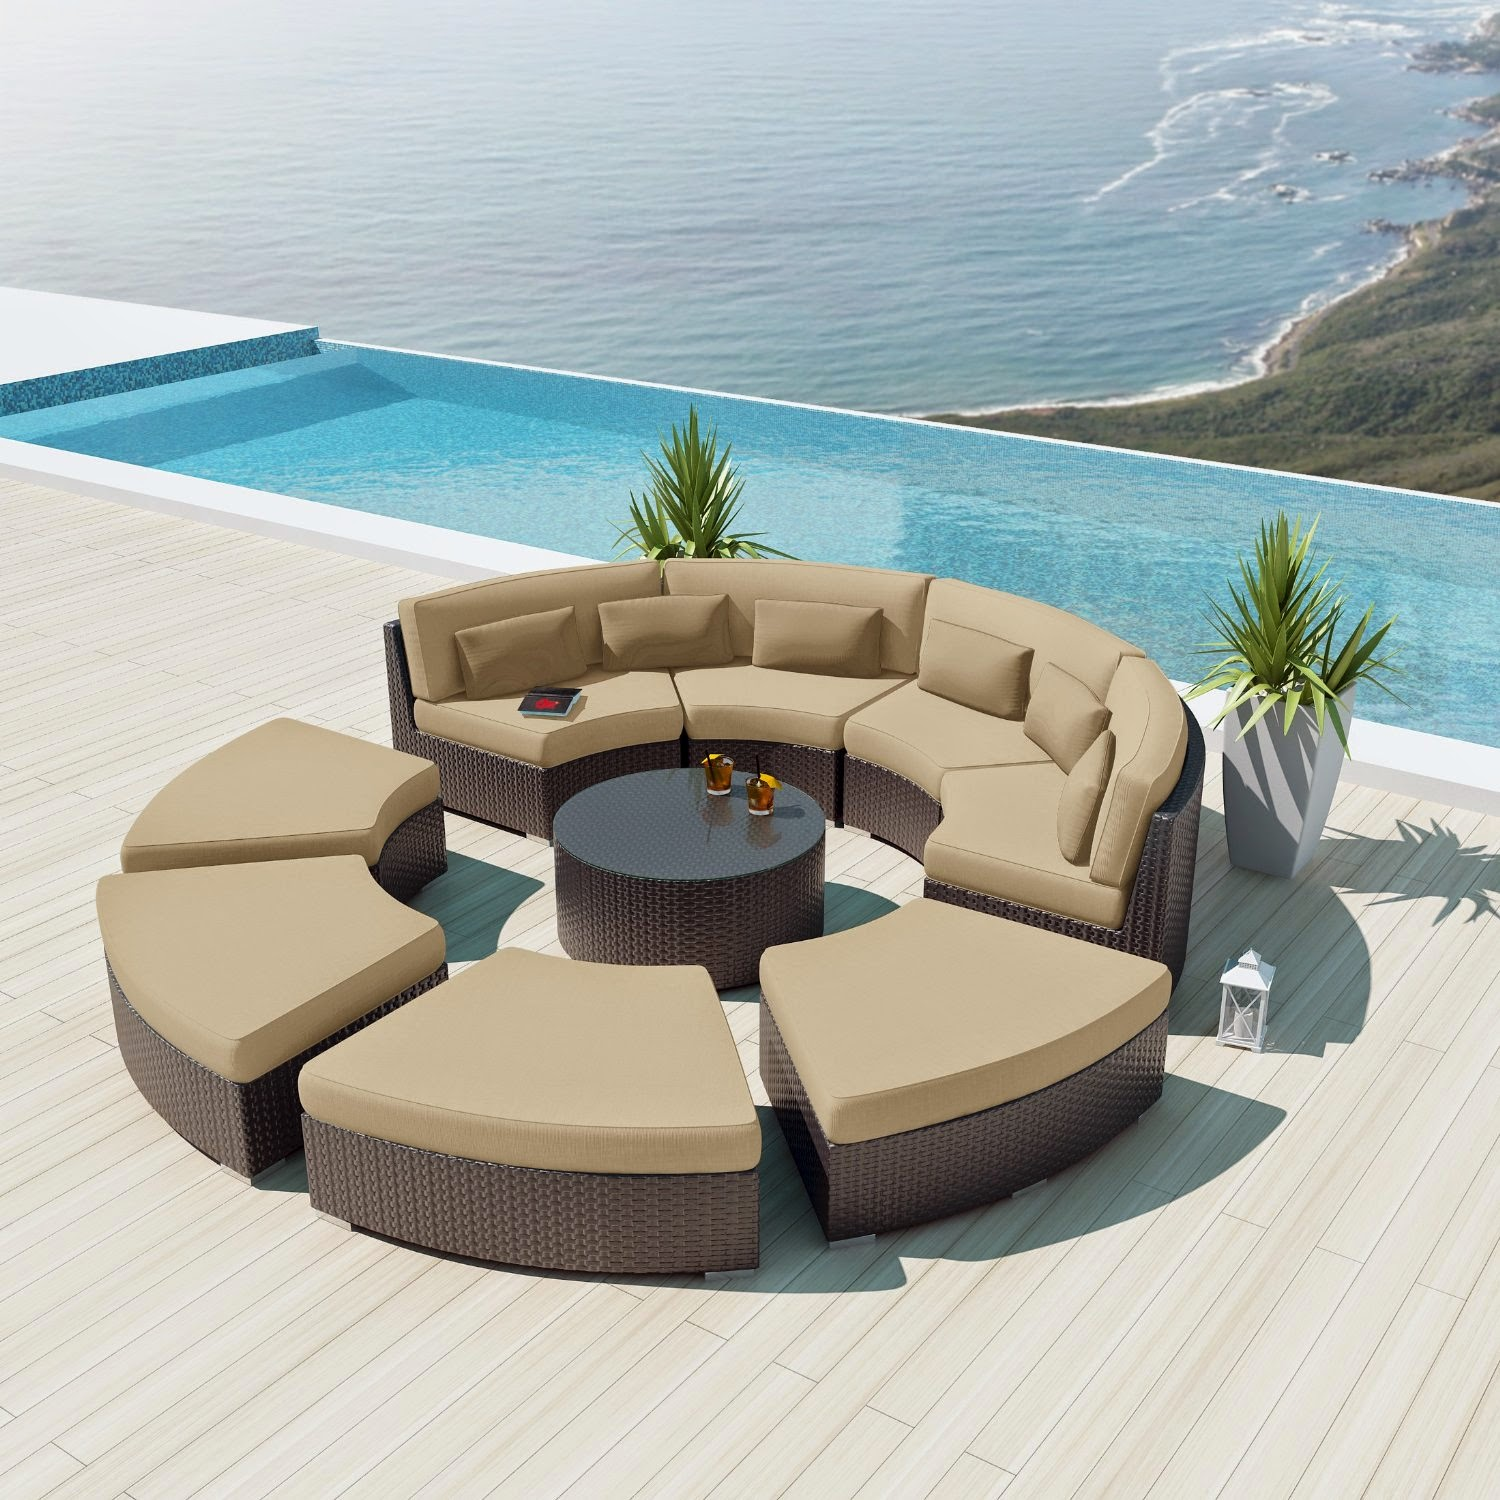 Top Seller Curved Sofa Website Curved Modular Sectional Sofa